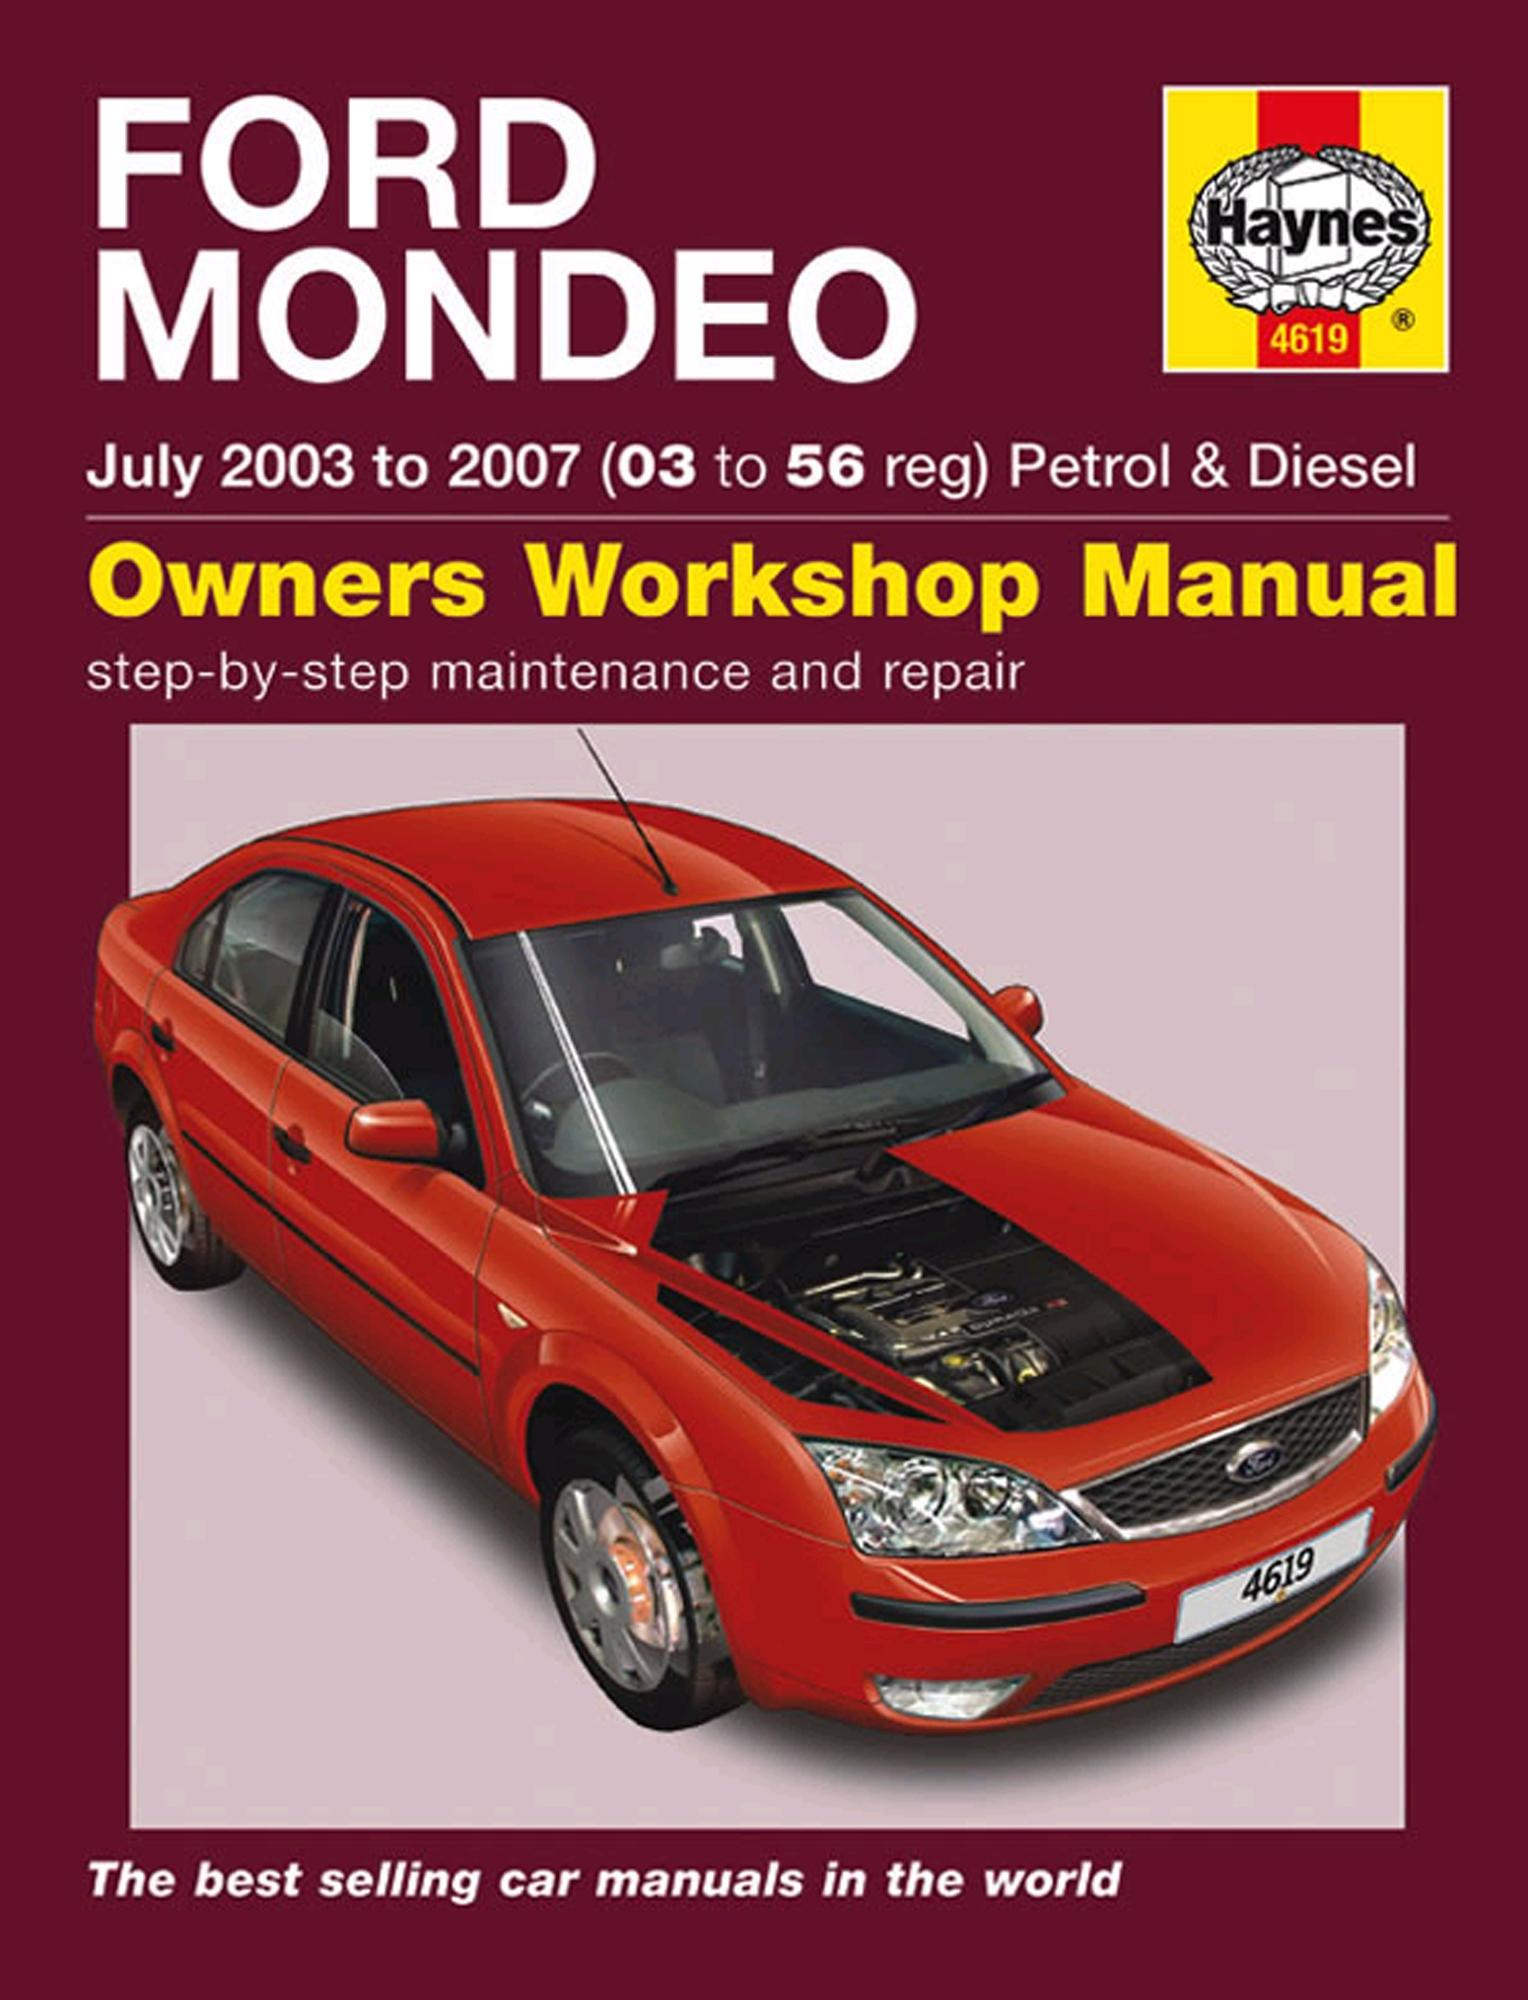 Haynes Owners Workshop Manual Ford Mondeo July 2003 - 2007 Petrol Diesel  Repair